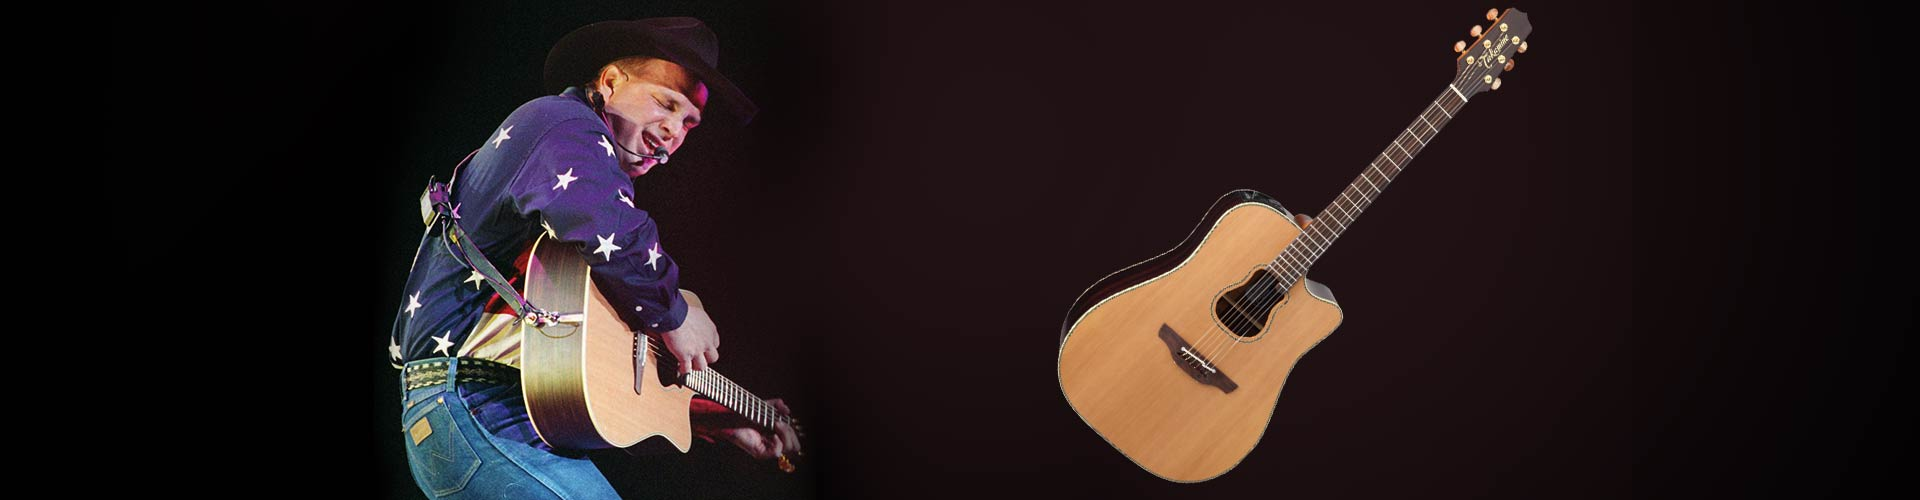 Takamine Signature Model #2 - The Garth Brooks GB7C.